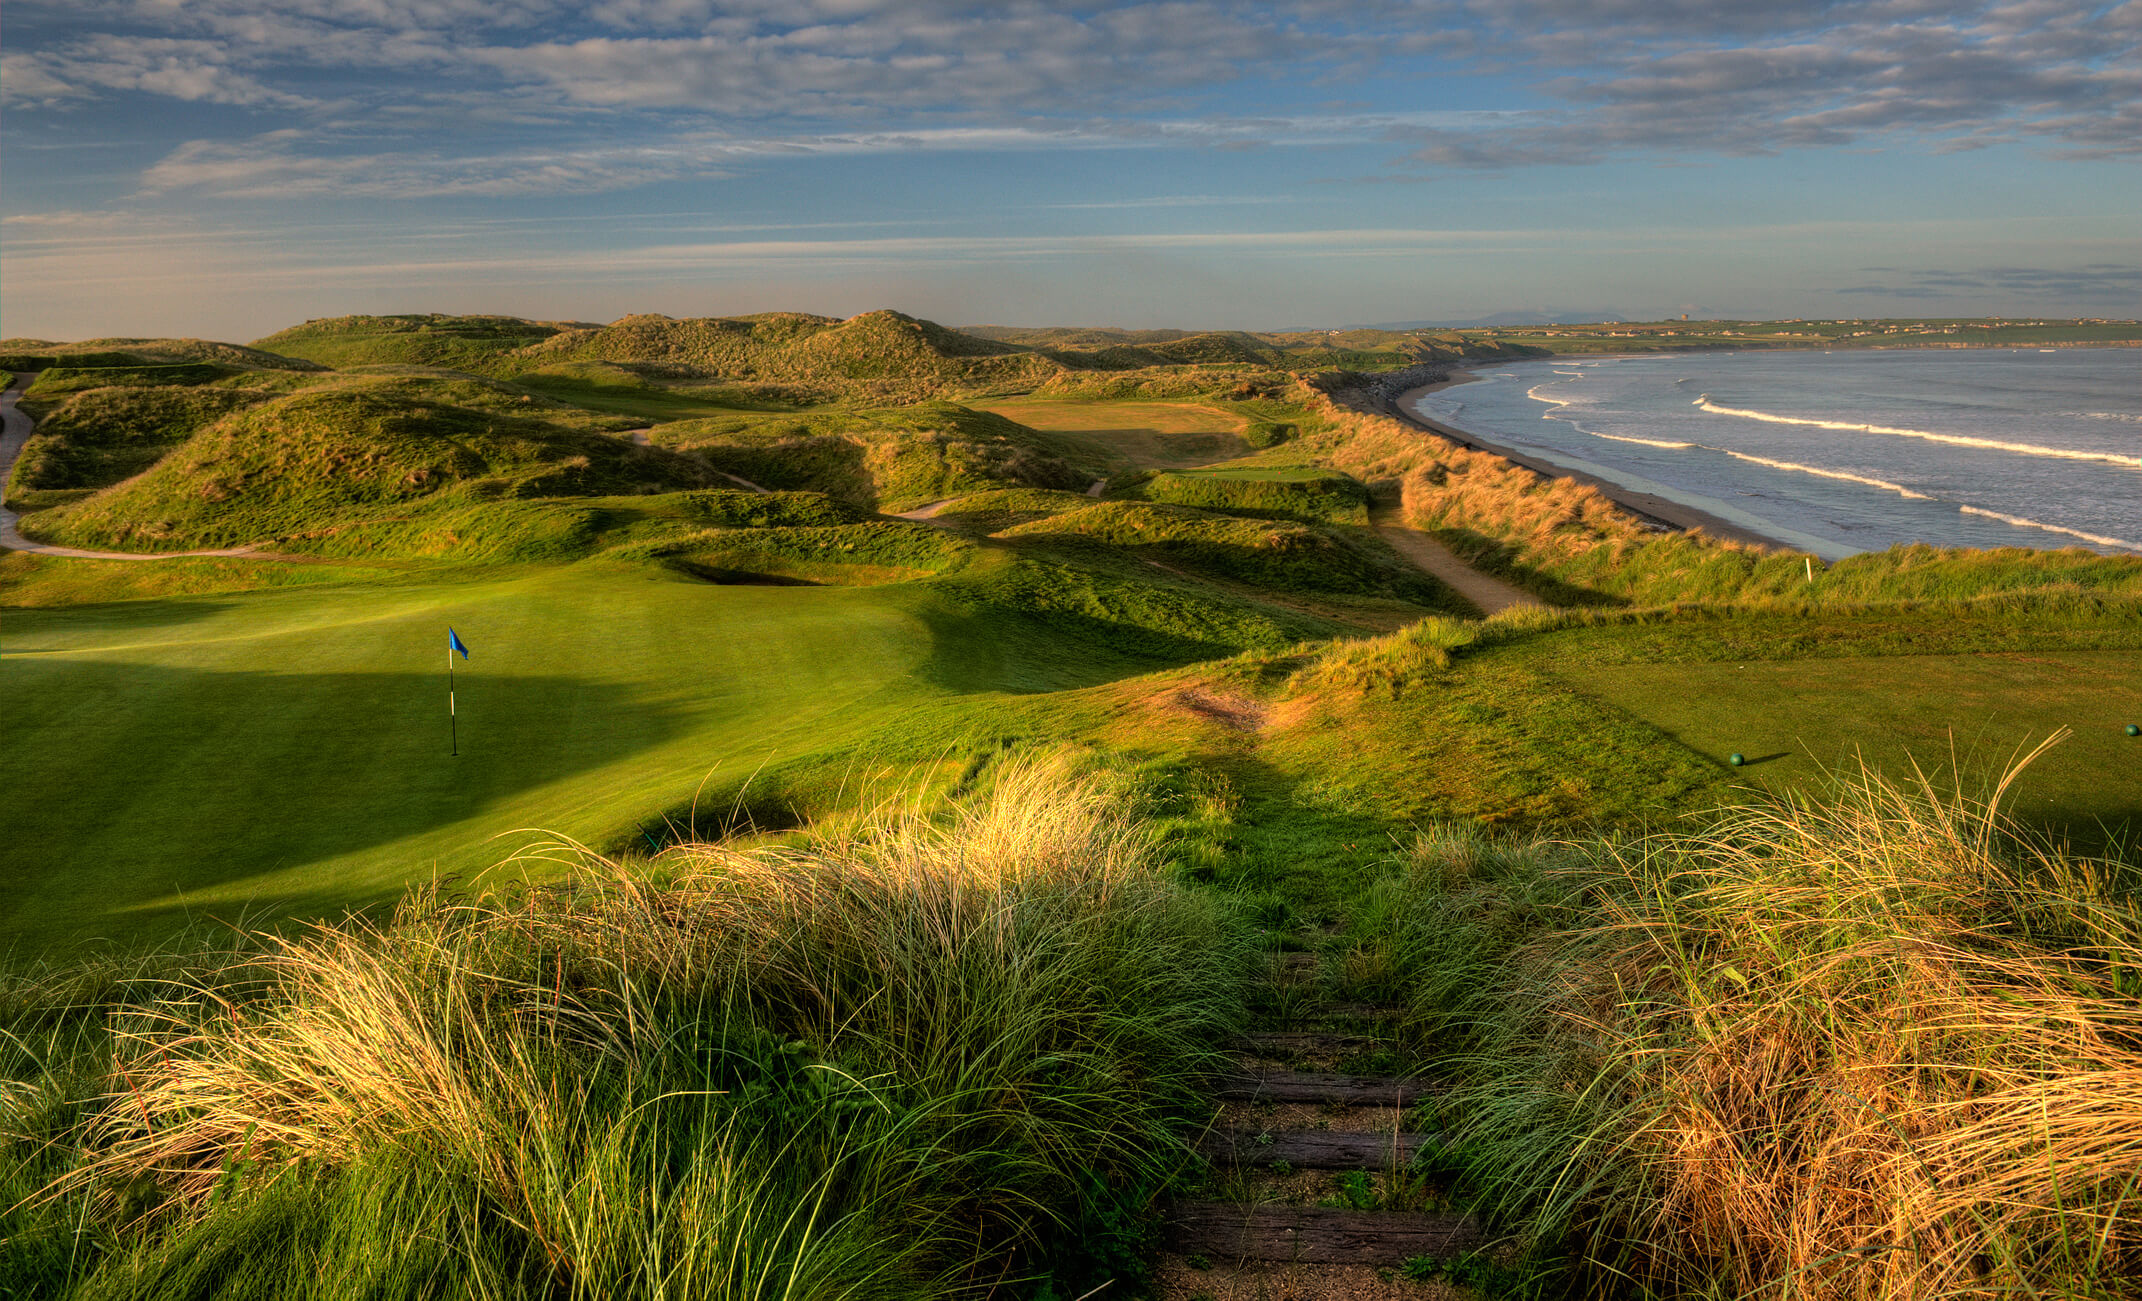 Ballybunion, Ireland's St. Andrews